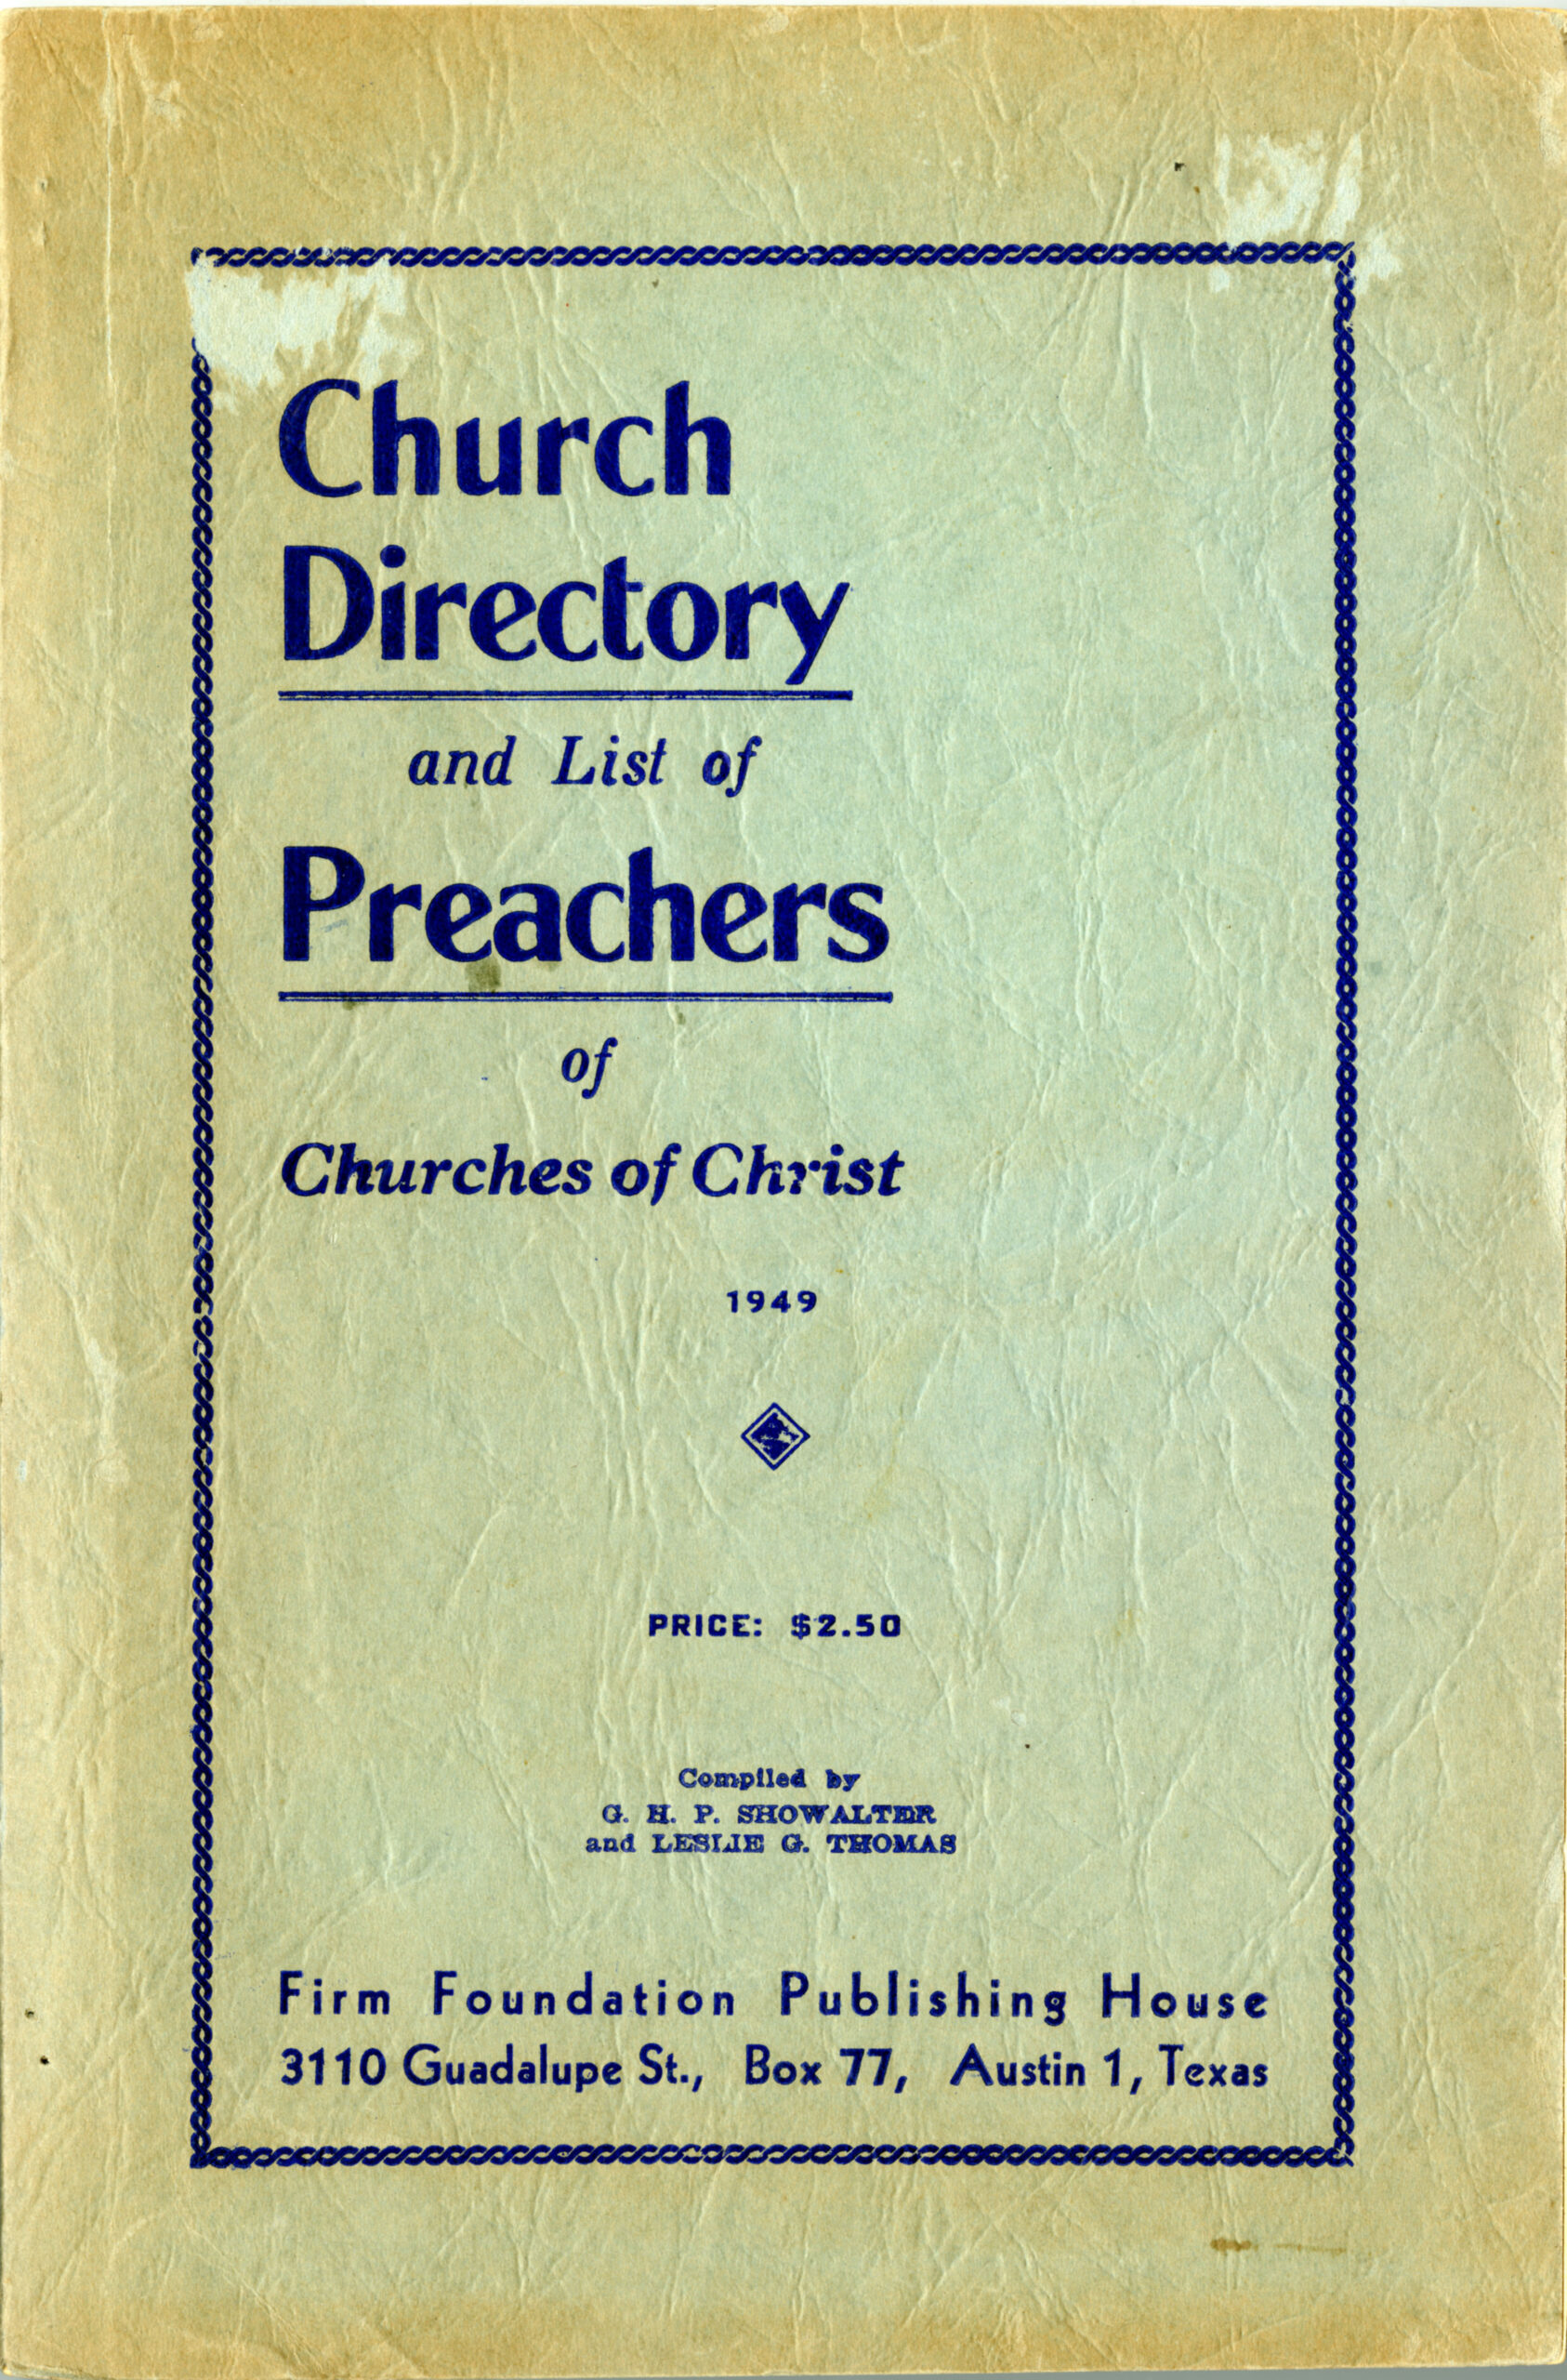 G. H. P. Showalter and Leslie G. Thomas, Church Directory and List of Preachers of Churches of Christ (1949). https://digitalcommons.acu.edu/crs_books/577